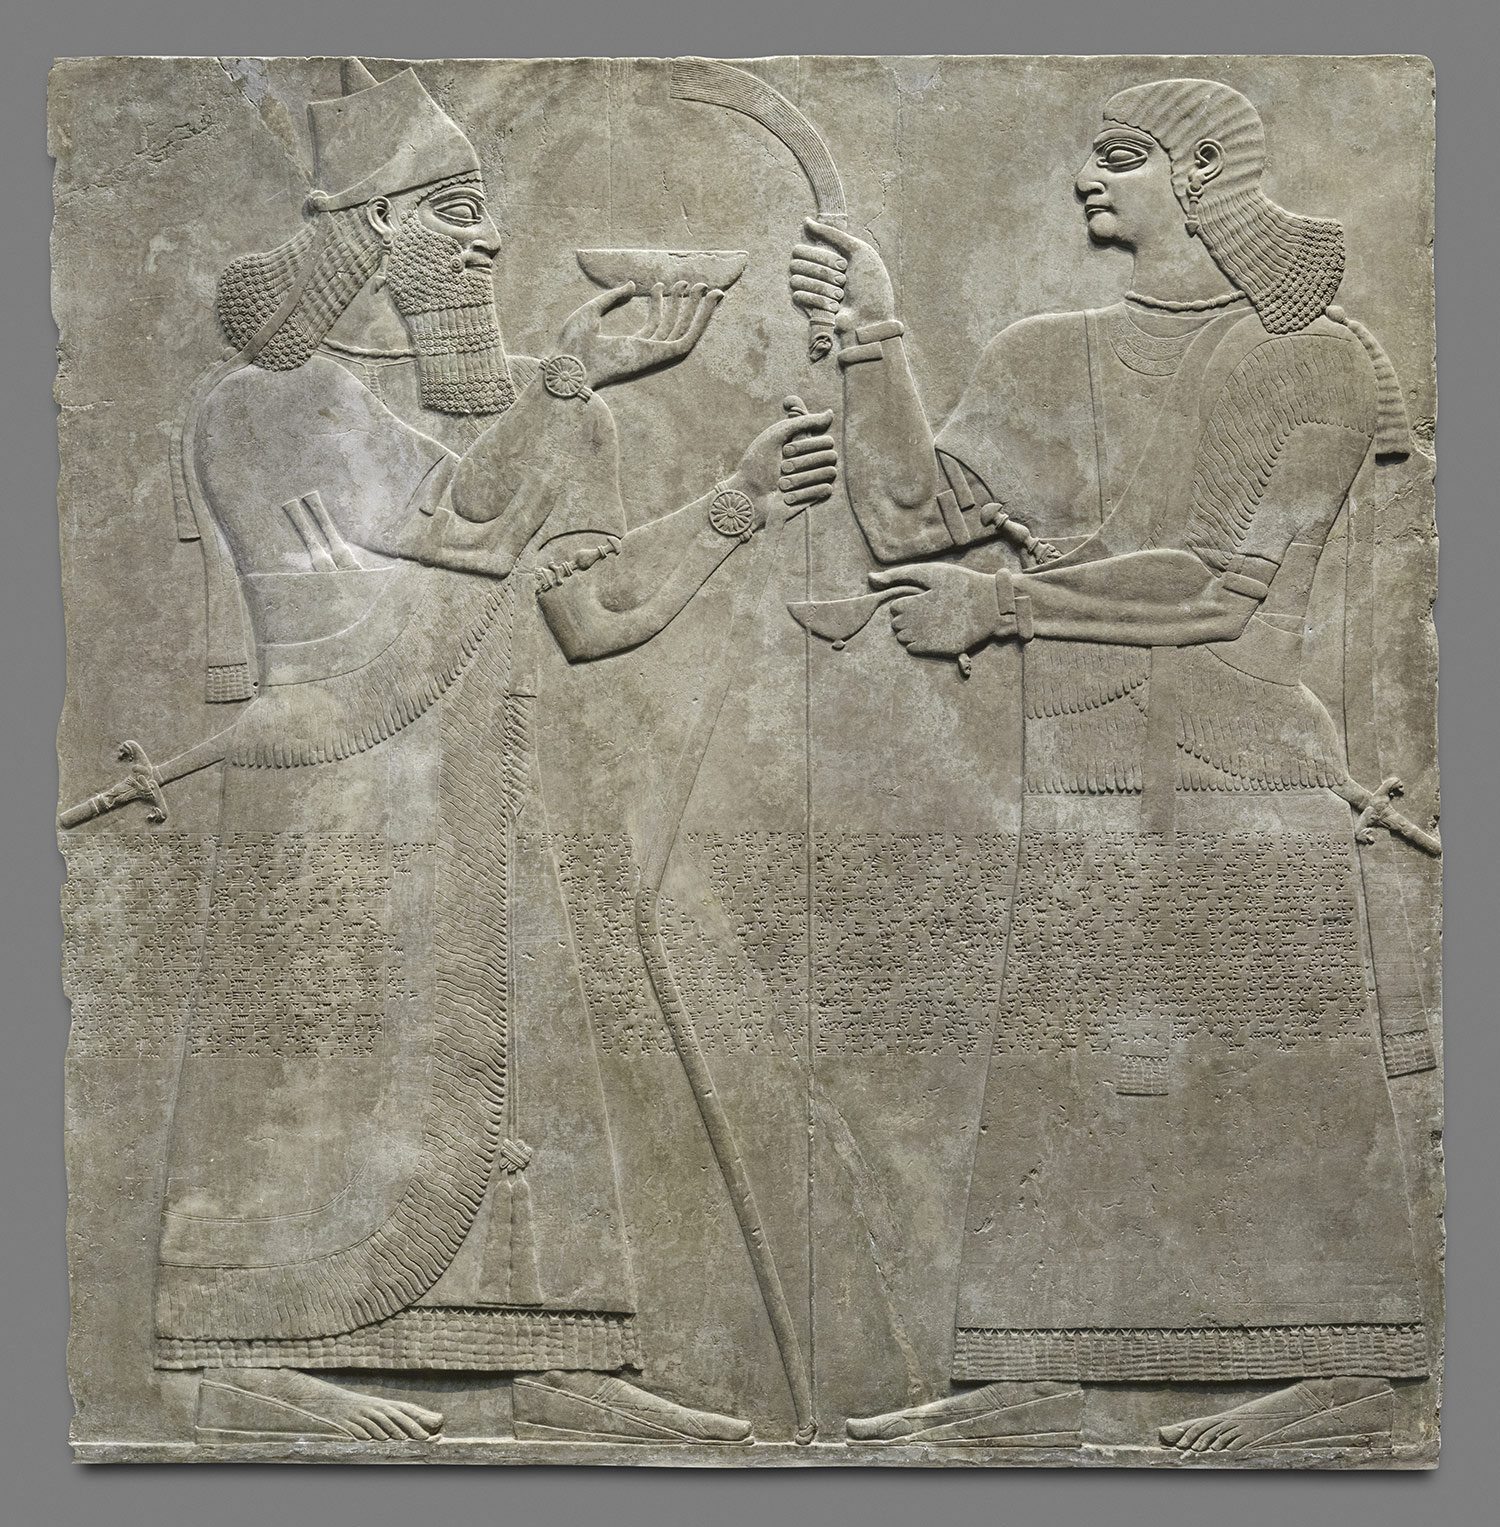 Relief king and eunuch attendant excavated at nimrud